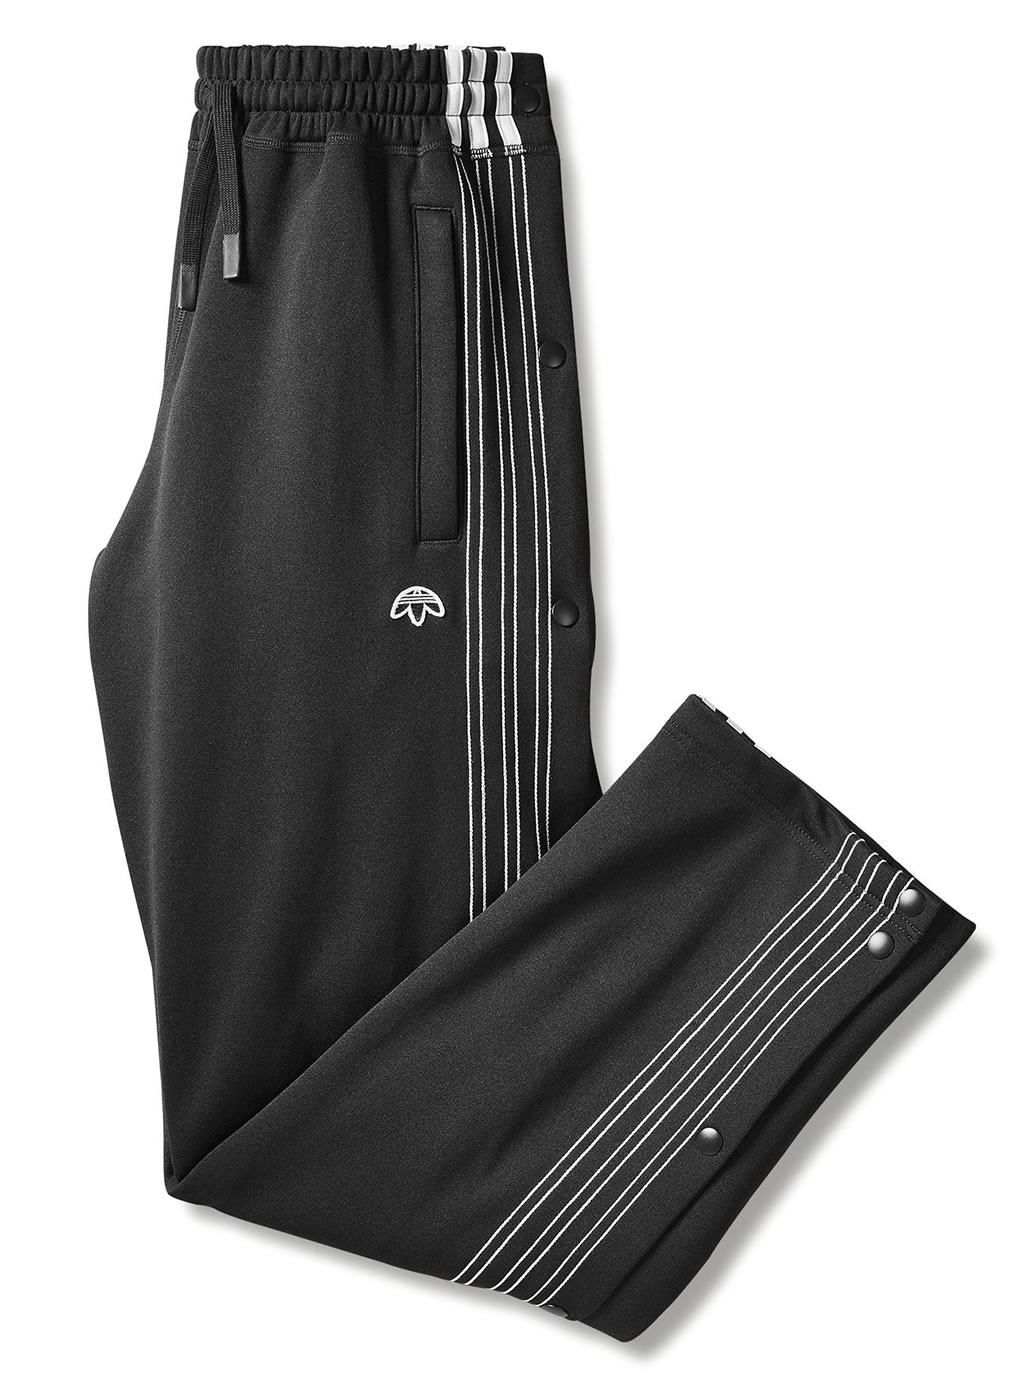 Black AW Track Pants by Adidas Originals